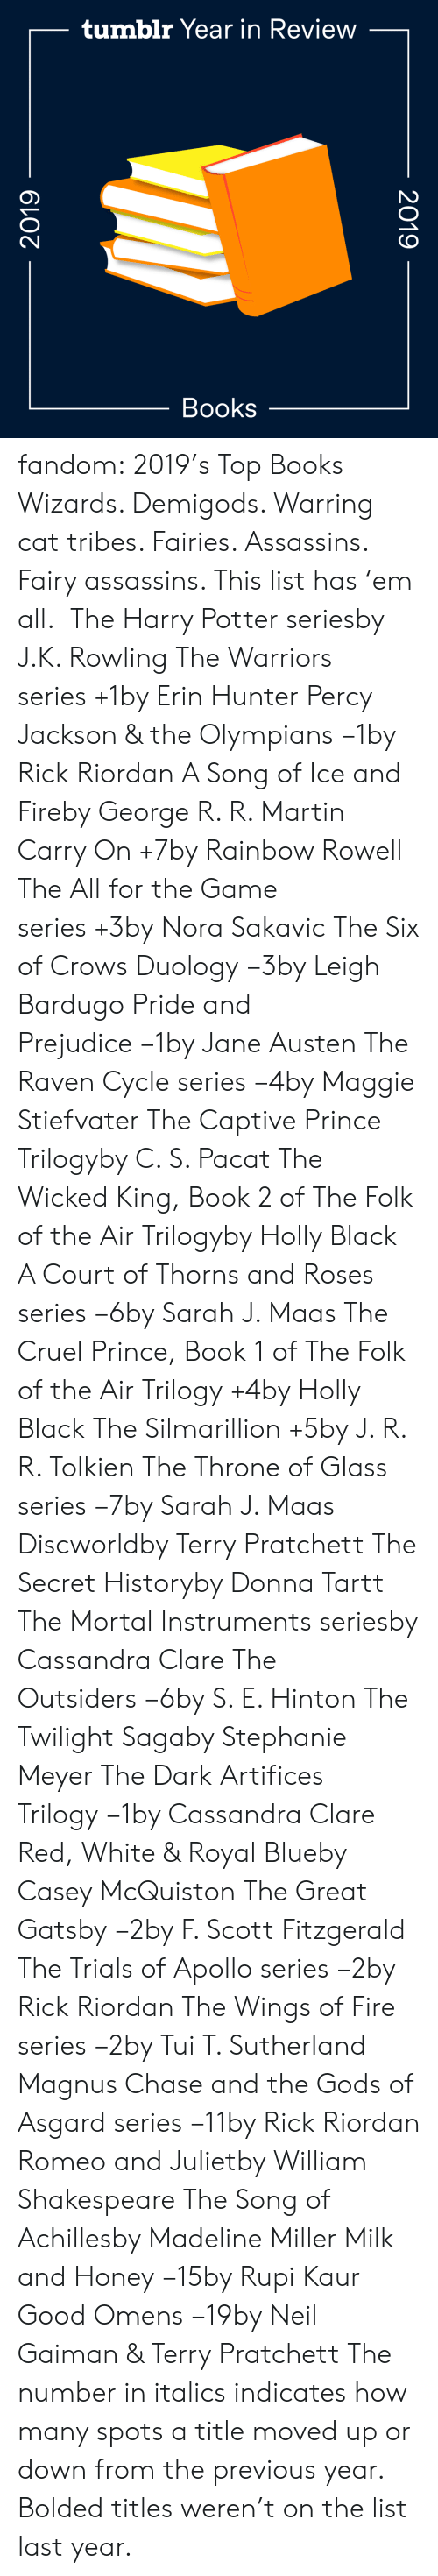 warrior: tumblr Year in Review  Books  2019  2019 fandom:  2019's Top Books  Wizards. Demigods. Warring cat tribes. Fairies. Assassins. Fairy assassins. This list has 'em all.   The Harry Potter seriesby J.K. Rowling  The Warriors series +1by Erin Hunter  Percy Jackson & the Olympians −1by Rick Riordan  A Song of Ice and Fireby George R. R. Martin  Carry On +7by Rainbow Rowell  The All for the Game series +3by Nora Sakavic  The Six of Crows Duology −3by Leigh Bardugo  Pride and Prejudice −1by Jane Austen  The Raven Cycle series −4by Maggie Stiefvater  The Captive Prince Trilogyby C. S. Pacat  The Wicked King, Book 2 of The Folk of the Air Trilogyby Holly Black  A Court of Thorns and Roses series −6by Sarah J. Maas  The Cruel Prince, Book 1 of The Folk of the Air Trilogy +4by Holly Black  The Silmarillion +5by J. R. R. Tolkien  The Throne of Glass series −7by Sarah J. Maas  Discworldby Terry Pratchett  The Secret Historyby Donna Tartt  The Mortal Instruments seriesby Cassandra Clare  The Outsiders −6by S. E. Hinton  The Twilight Sagaby Stephanie Meyer  The Dark Artifices Trilogy −1by Cassandra Clare  Red, White & Royal Blueby Casey McQuiston  The Great Gatsby −2by F. Scott Fitzgerald  The Trials of Apollo series −2by Rick Riordan  The Wings of Fire series −2by Tui T. Sutherland  Magnus Chase and the Gods of Asgard series −11by Rick Riordan  Romeo and Julietby William Shakespeare  The Song of Achillesby Madeline Miller  Milk and Honey −15by Rupi Kaur  Good Omens −19by Neil Gaiman & Terry Pratchett The number in italics indicates how many spots a title moved up or down from the previous year. Bolded titles weren't on the list last year.